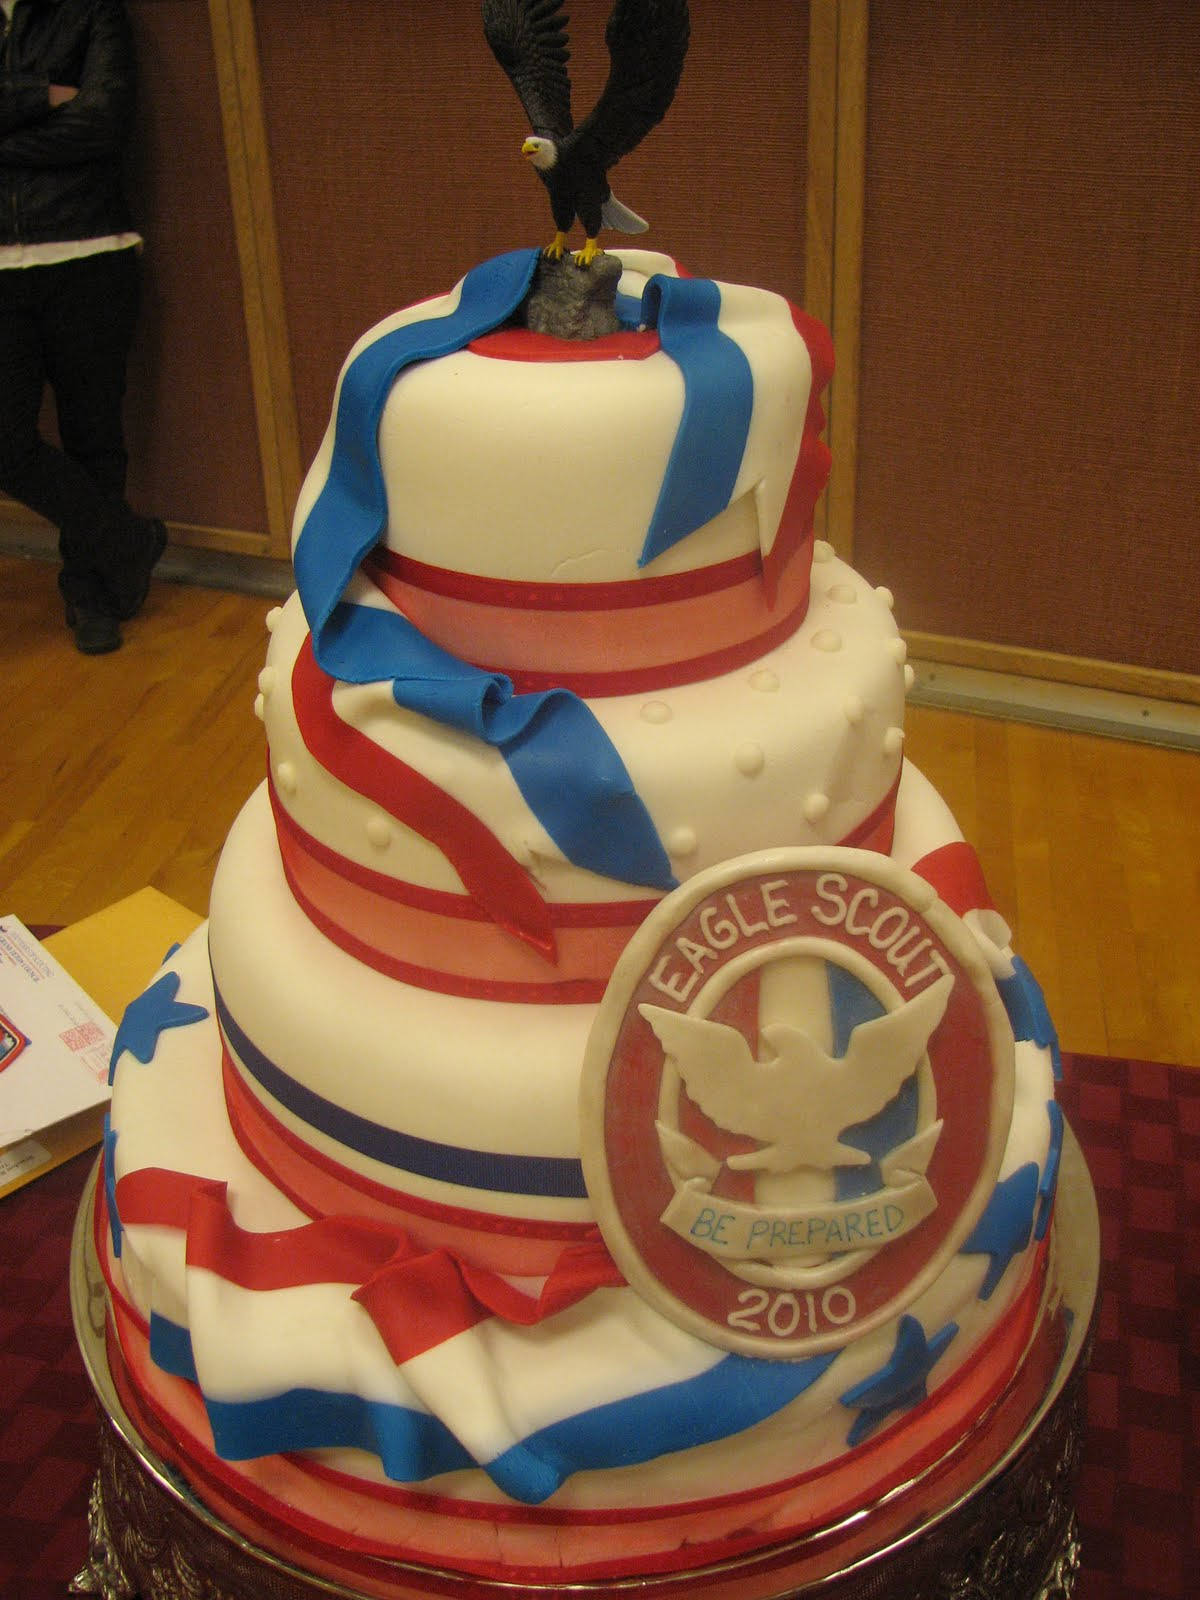 Eagle Scout Cake Ideas http://decadentdesignsbylori.blogspot.com/2011/01/eagle-scout-court-of-honor.html